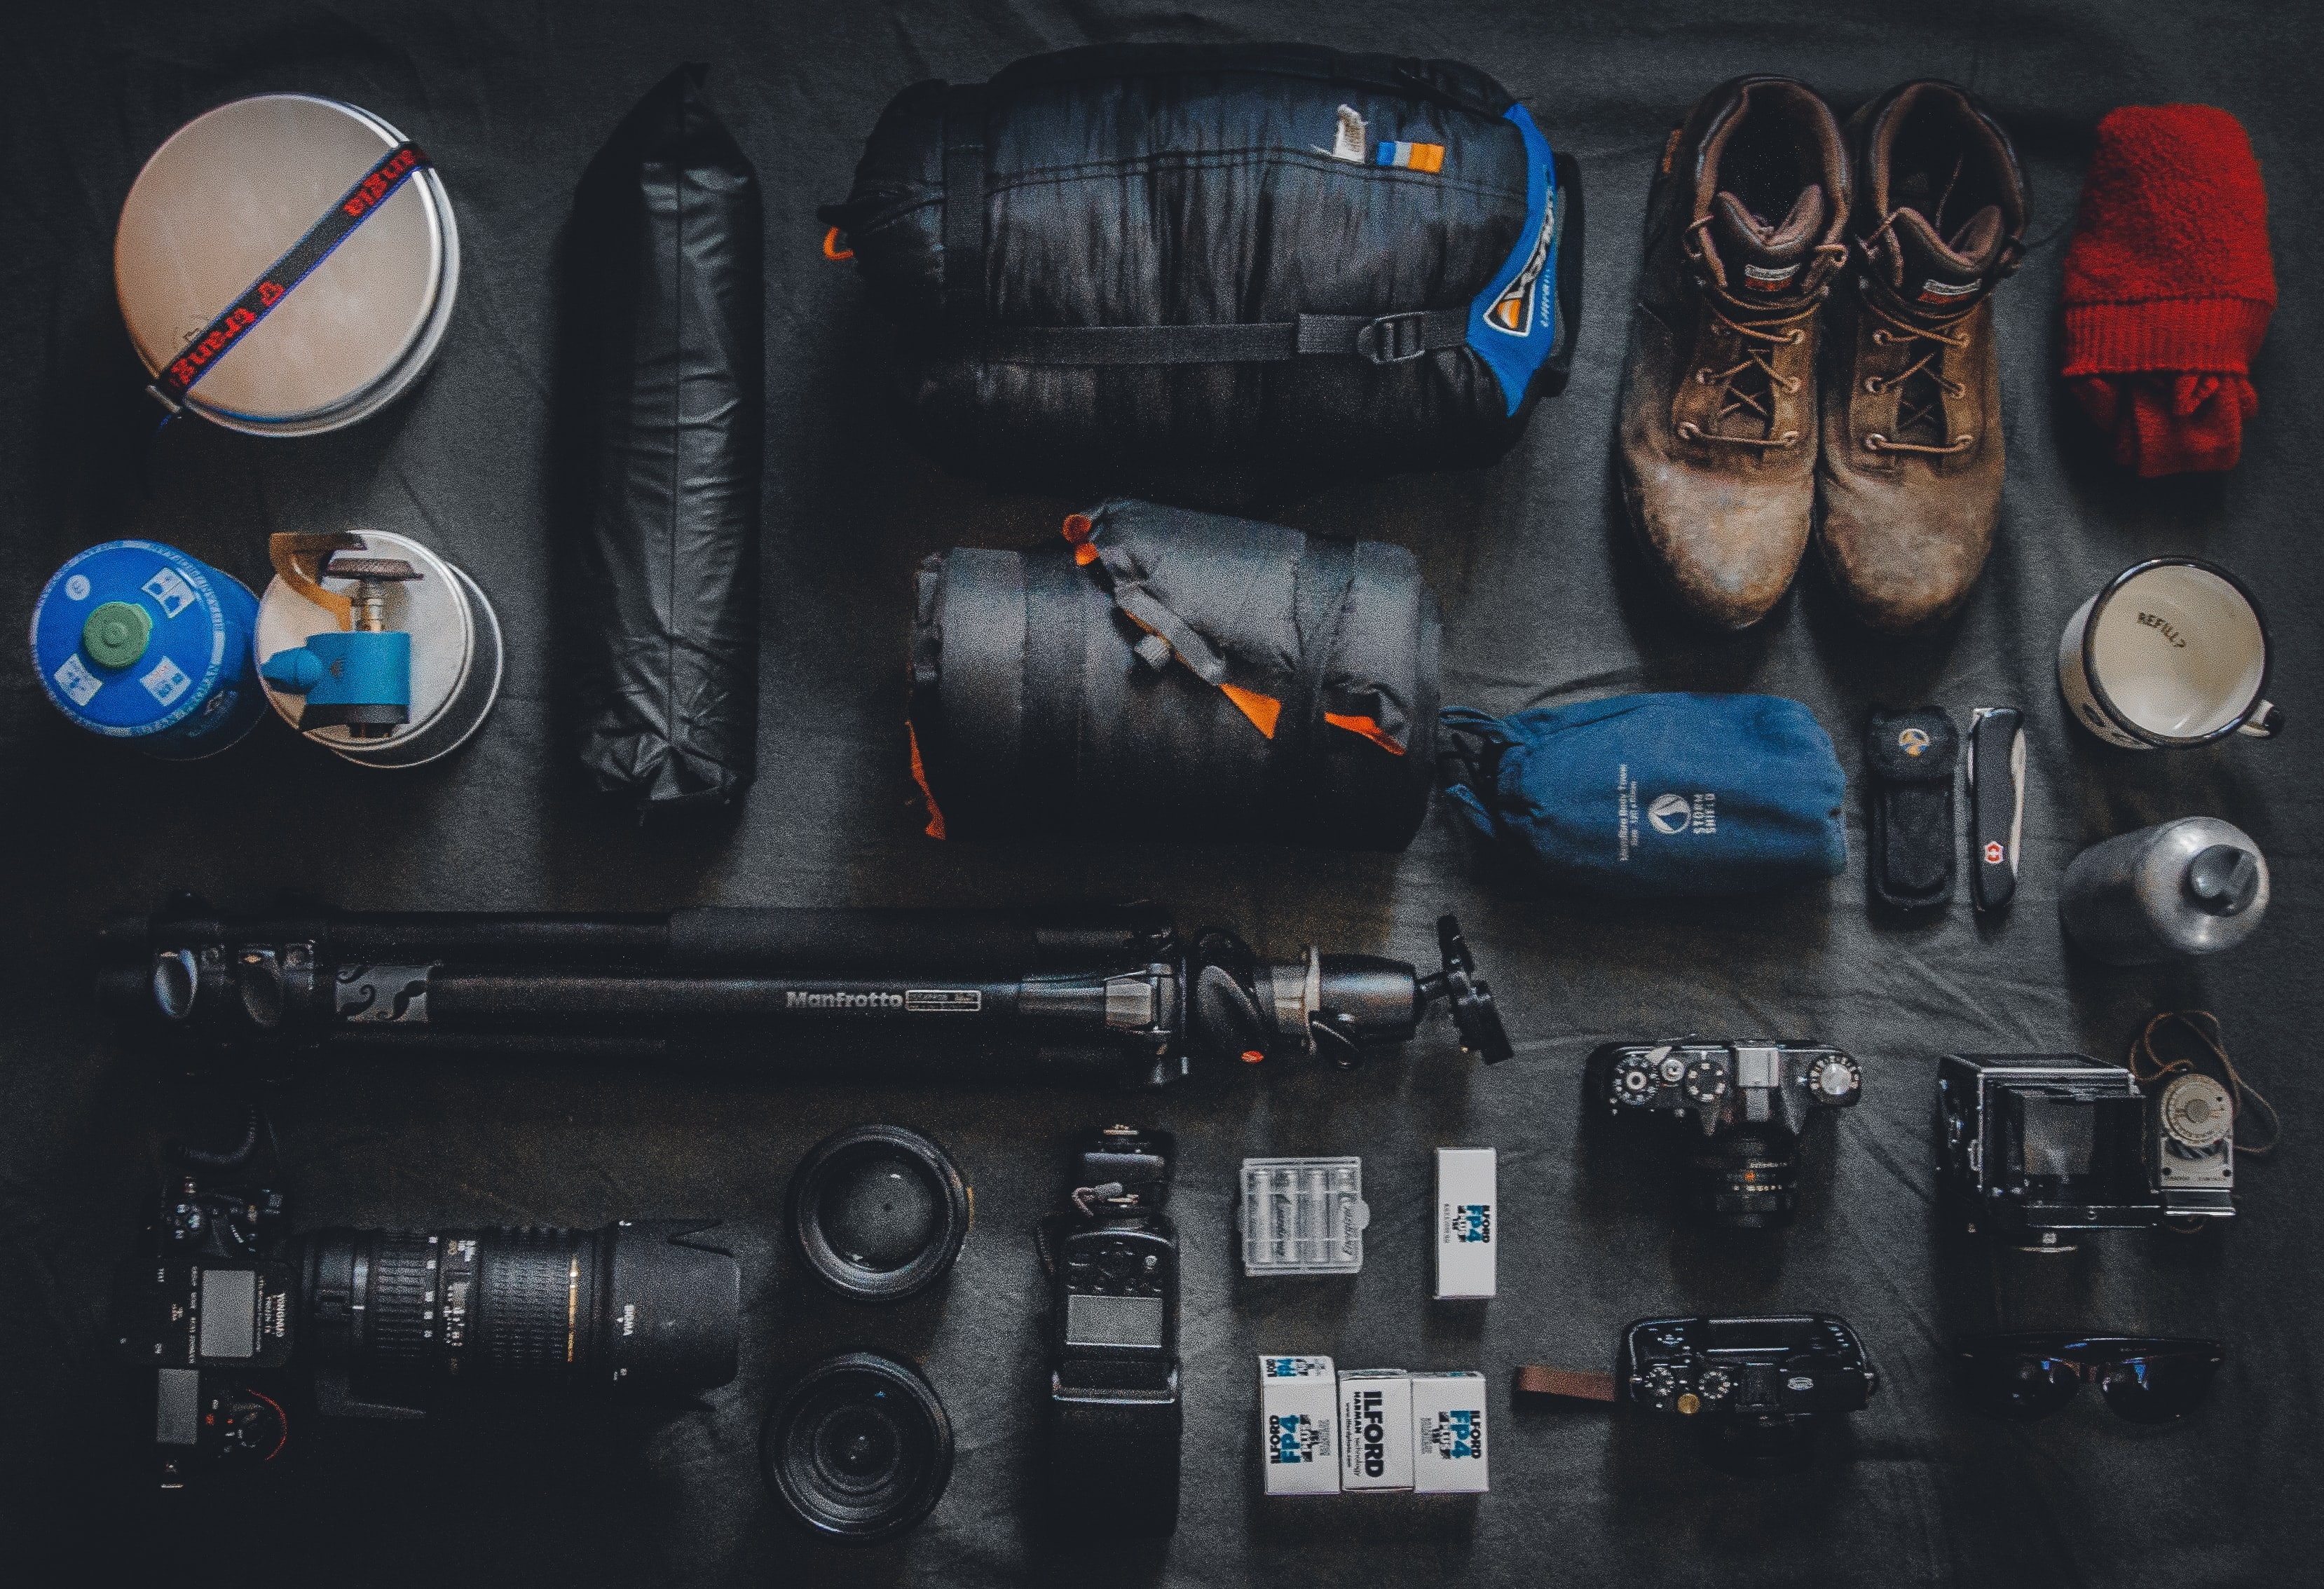 Neatly arranged boots and photography equipment including camera, lens, tripod, sleeping bag, and mug